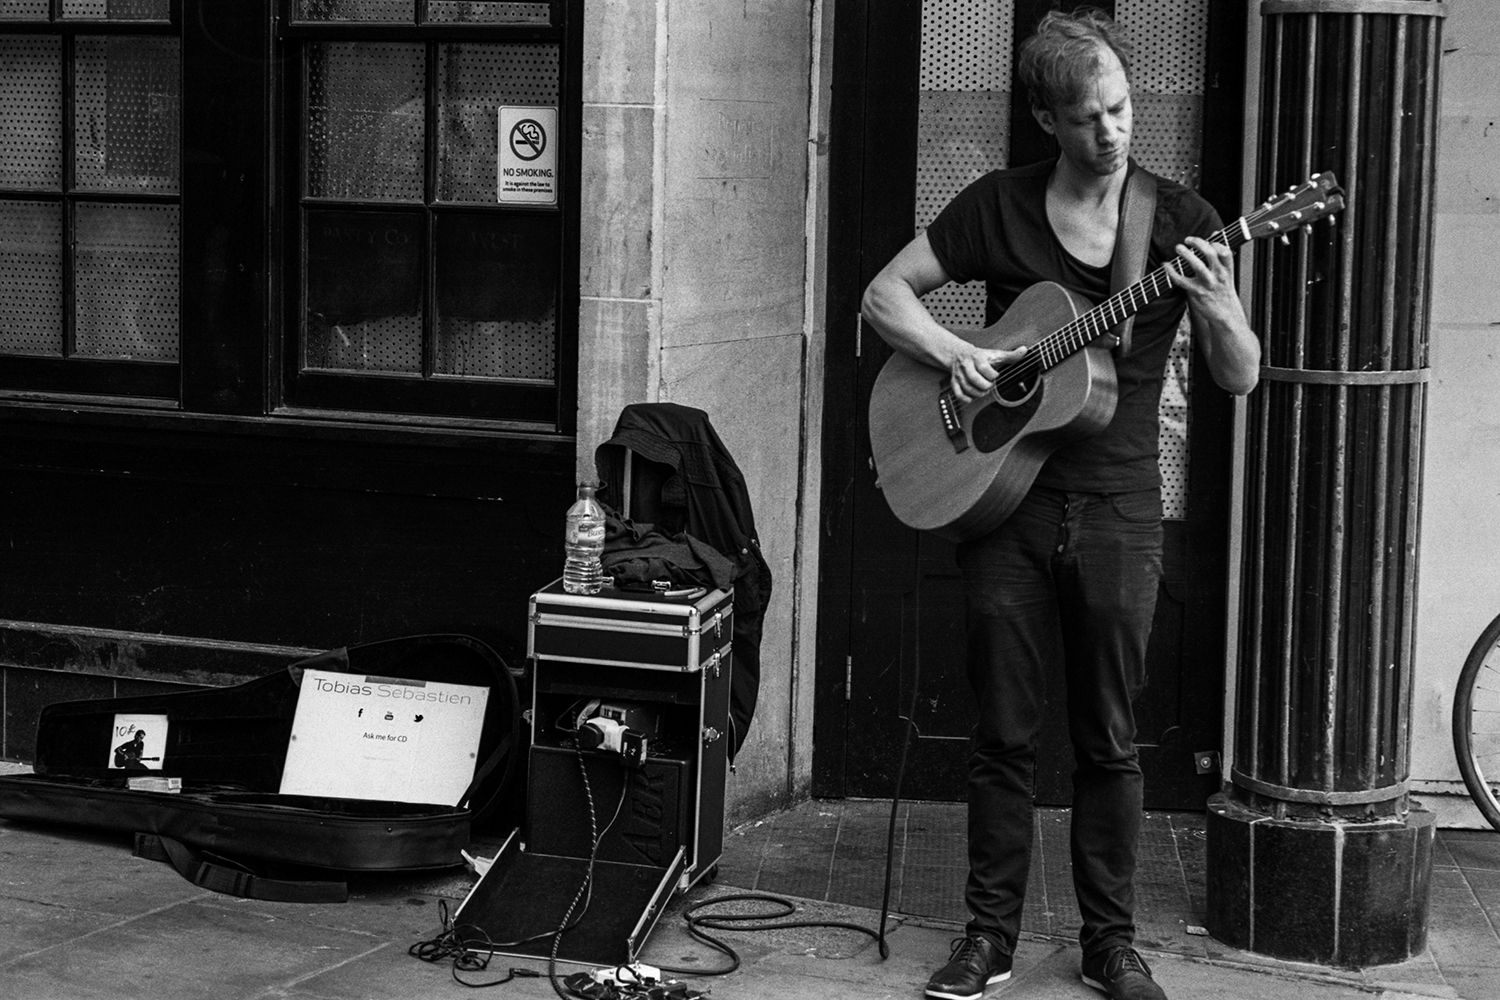 A lot of the street musicians in Cambridge are not terribly good, but there are a few worth stopping and listening to as they perform. Tobias was very good!